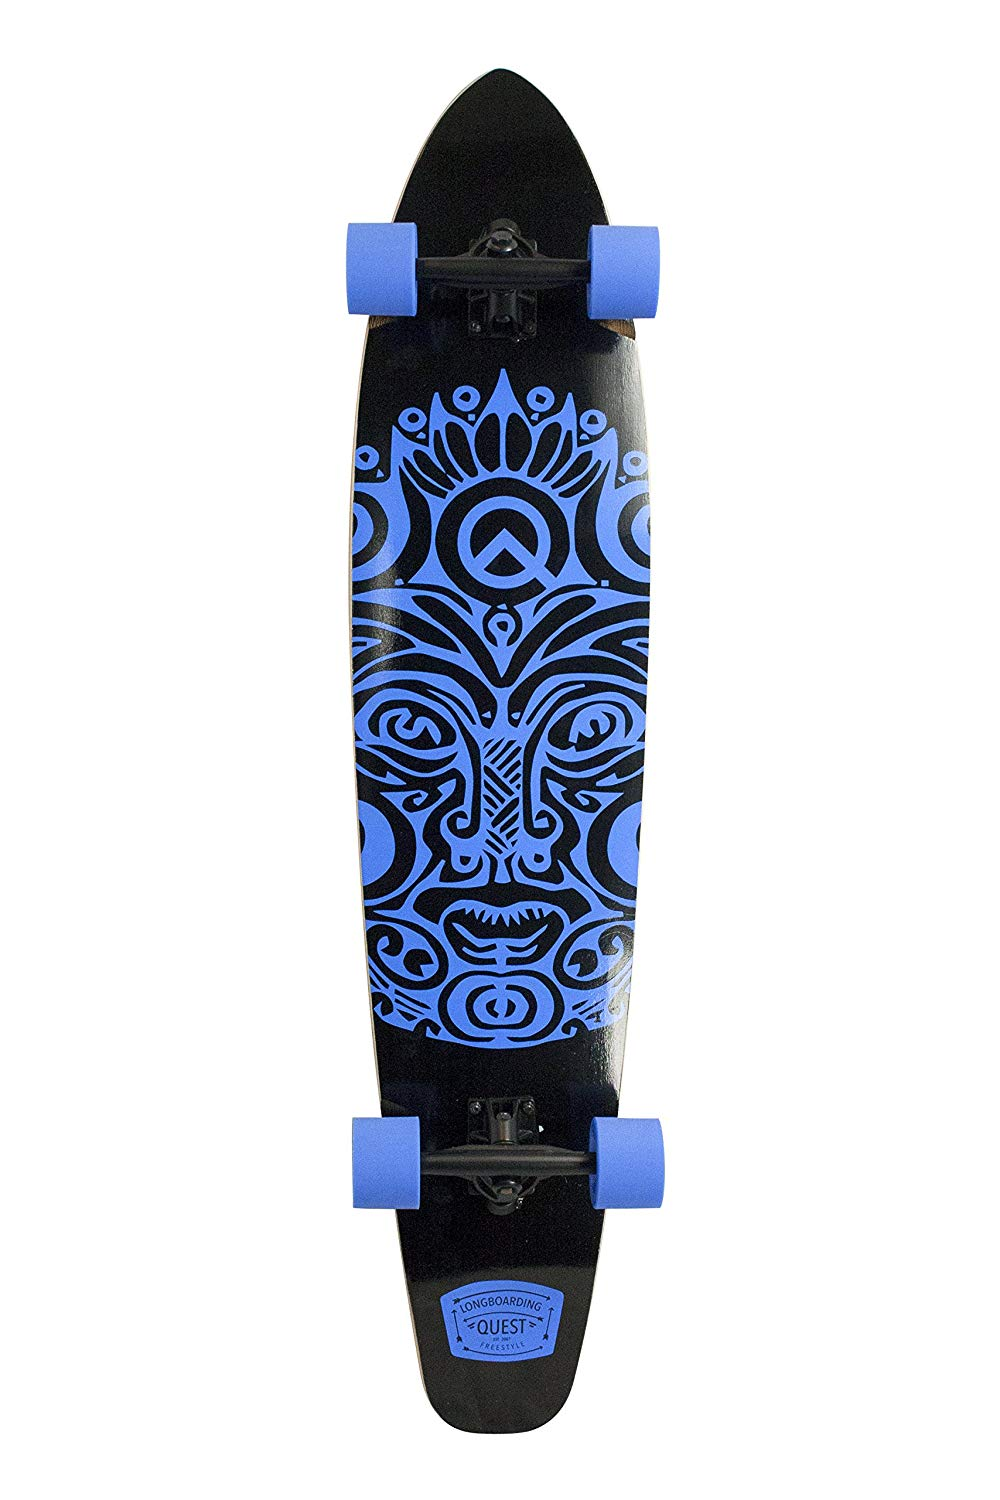 "Quest The Super Cruiser The Original Artisan Bamboo and Maple 44"" Longboard Skateboard"